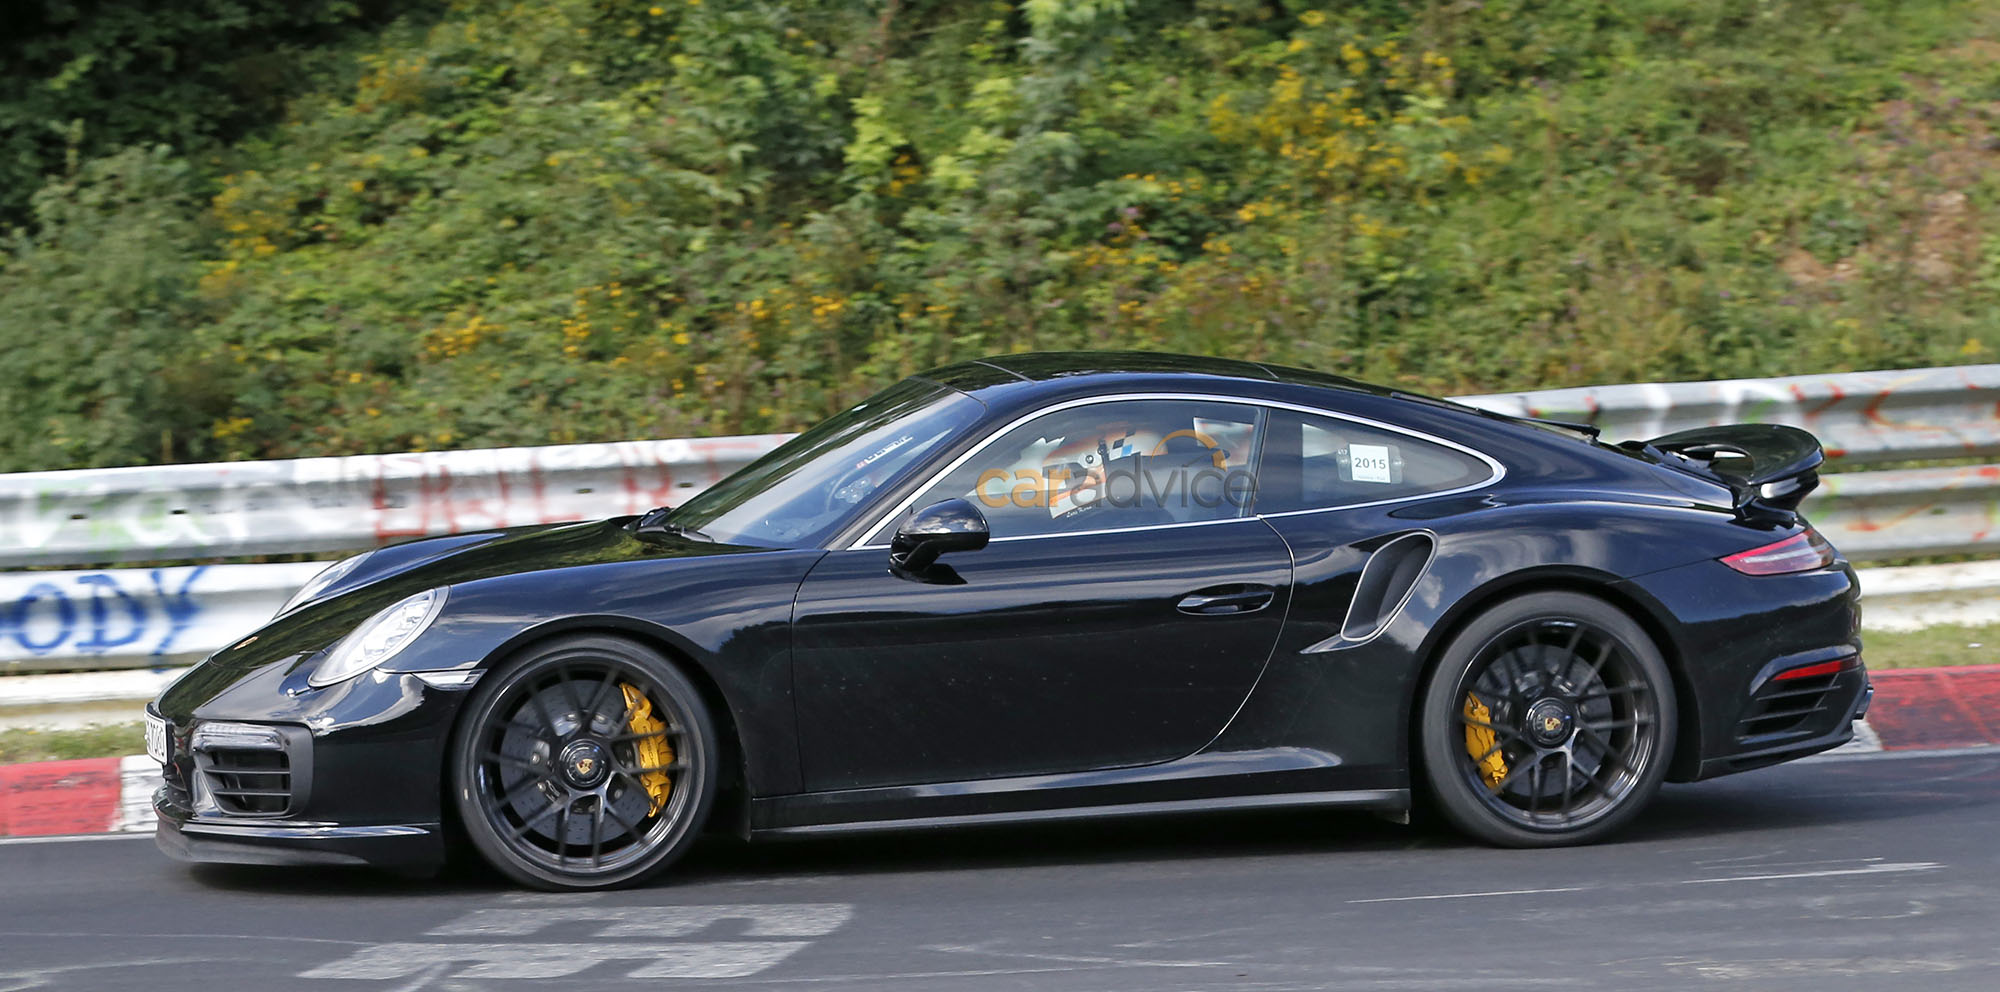 2016 porsche 911 turbo s facelift spied undisguised photos caradvice. Black Bedroom Furniture Sets. Home Design Ideas